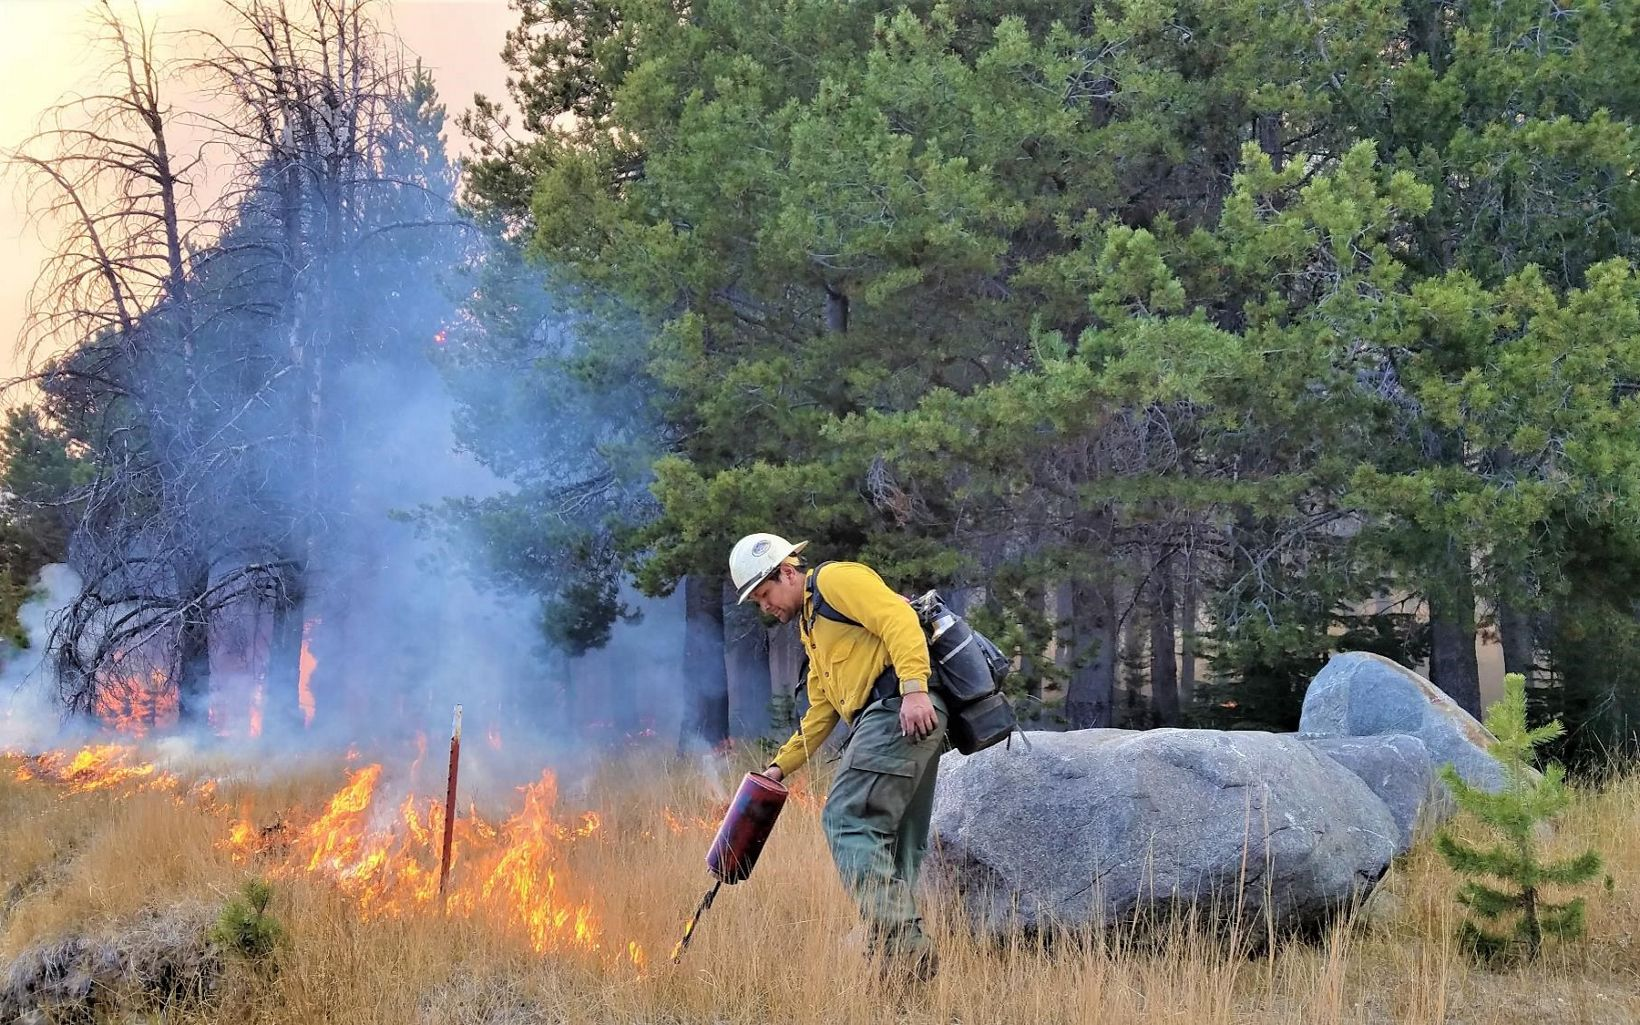 A worker in a hardhat and fire gear starts a fire in a grassy area using a drip torch.